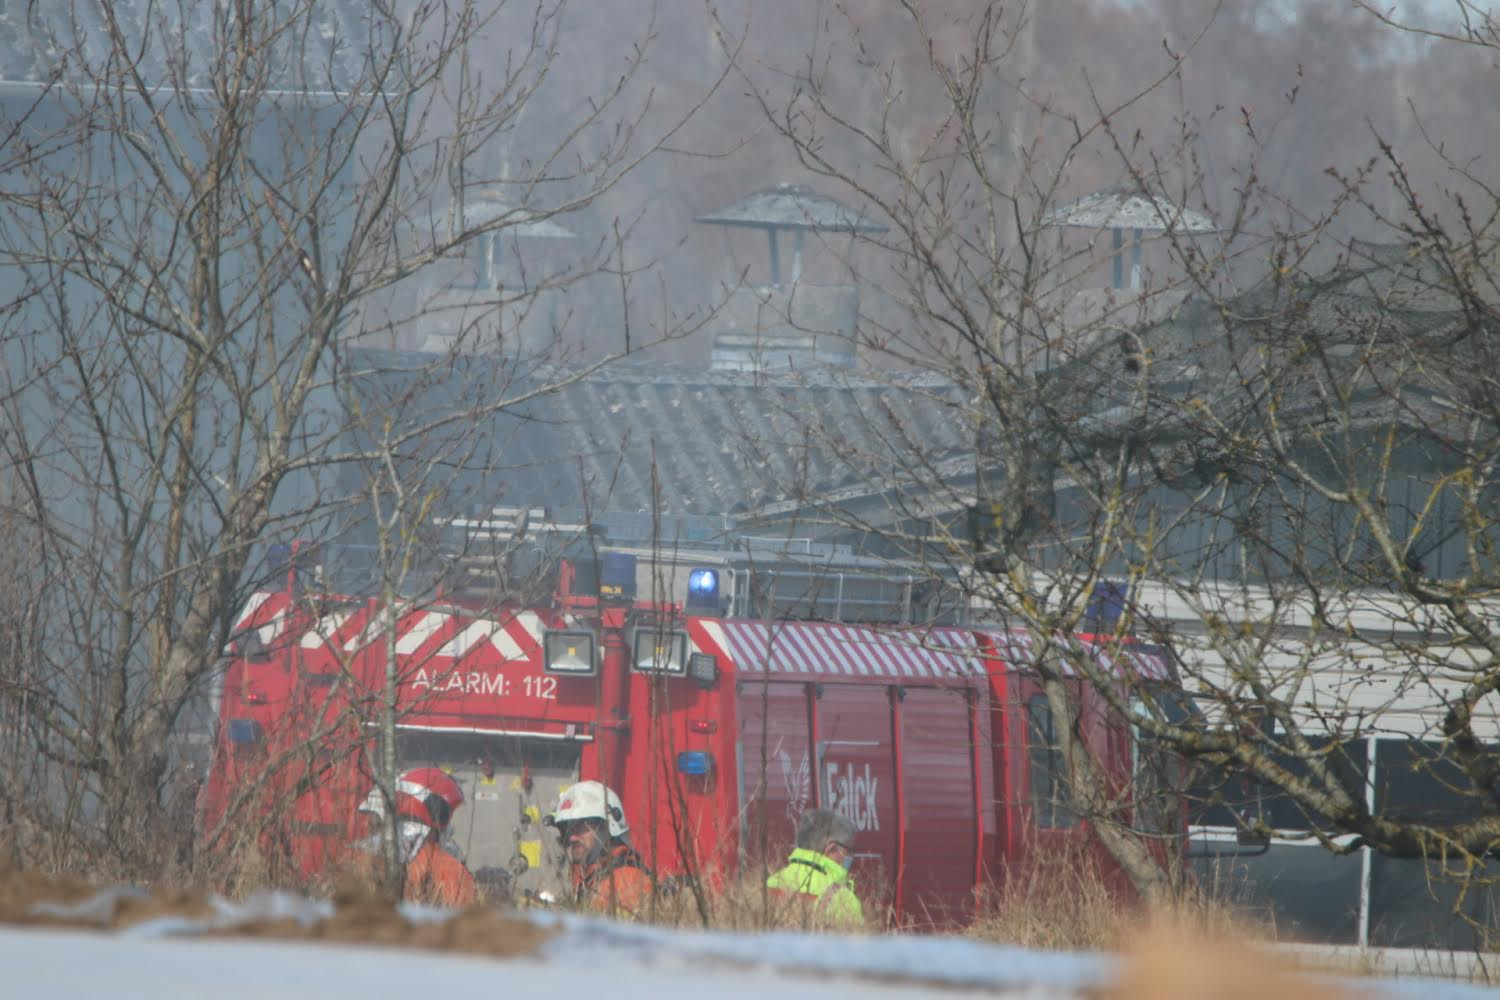 Brand i containere i Haarby